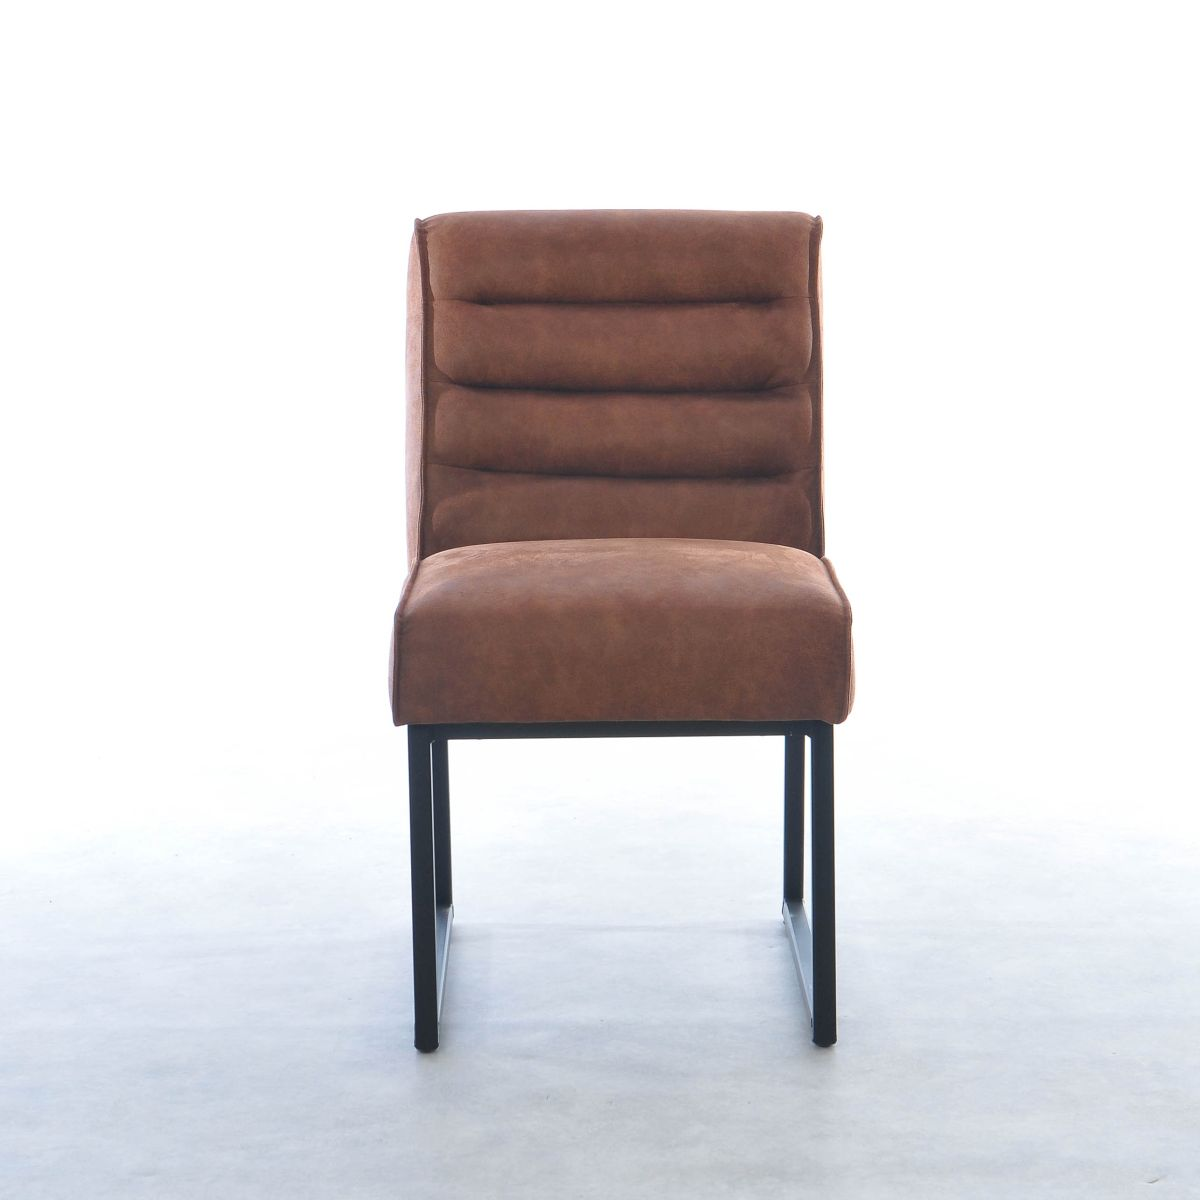 Dining Room Chair Colin Stylish, Stylish Dining Room Chairs